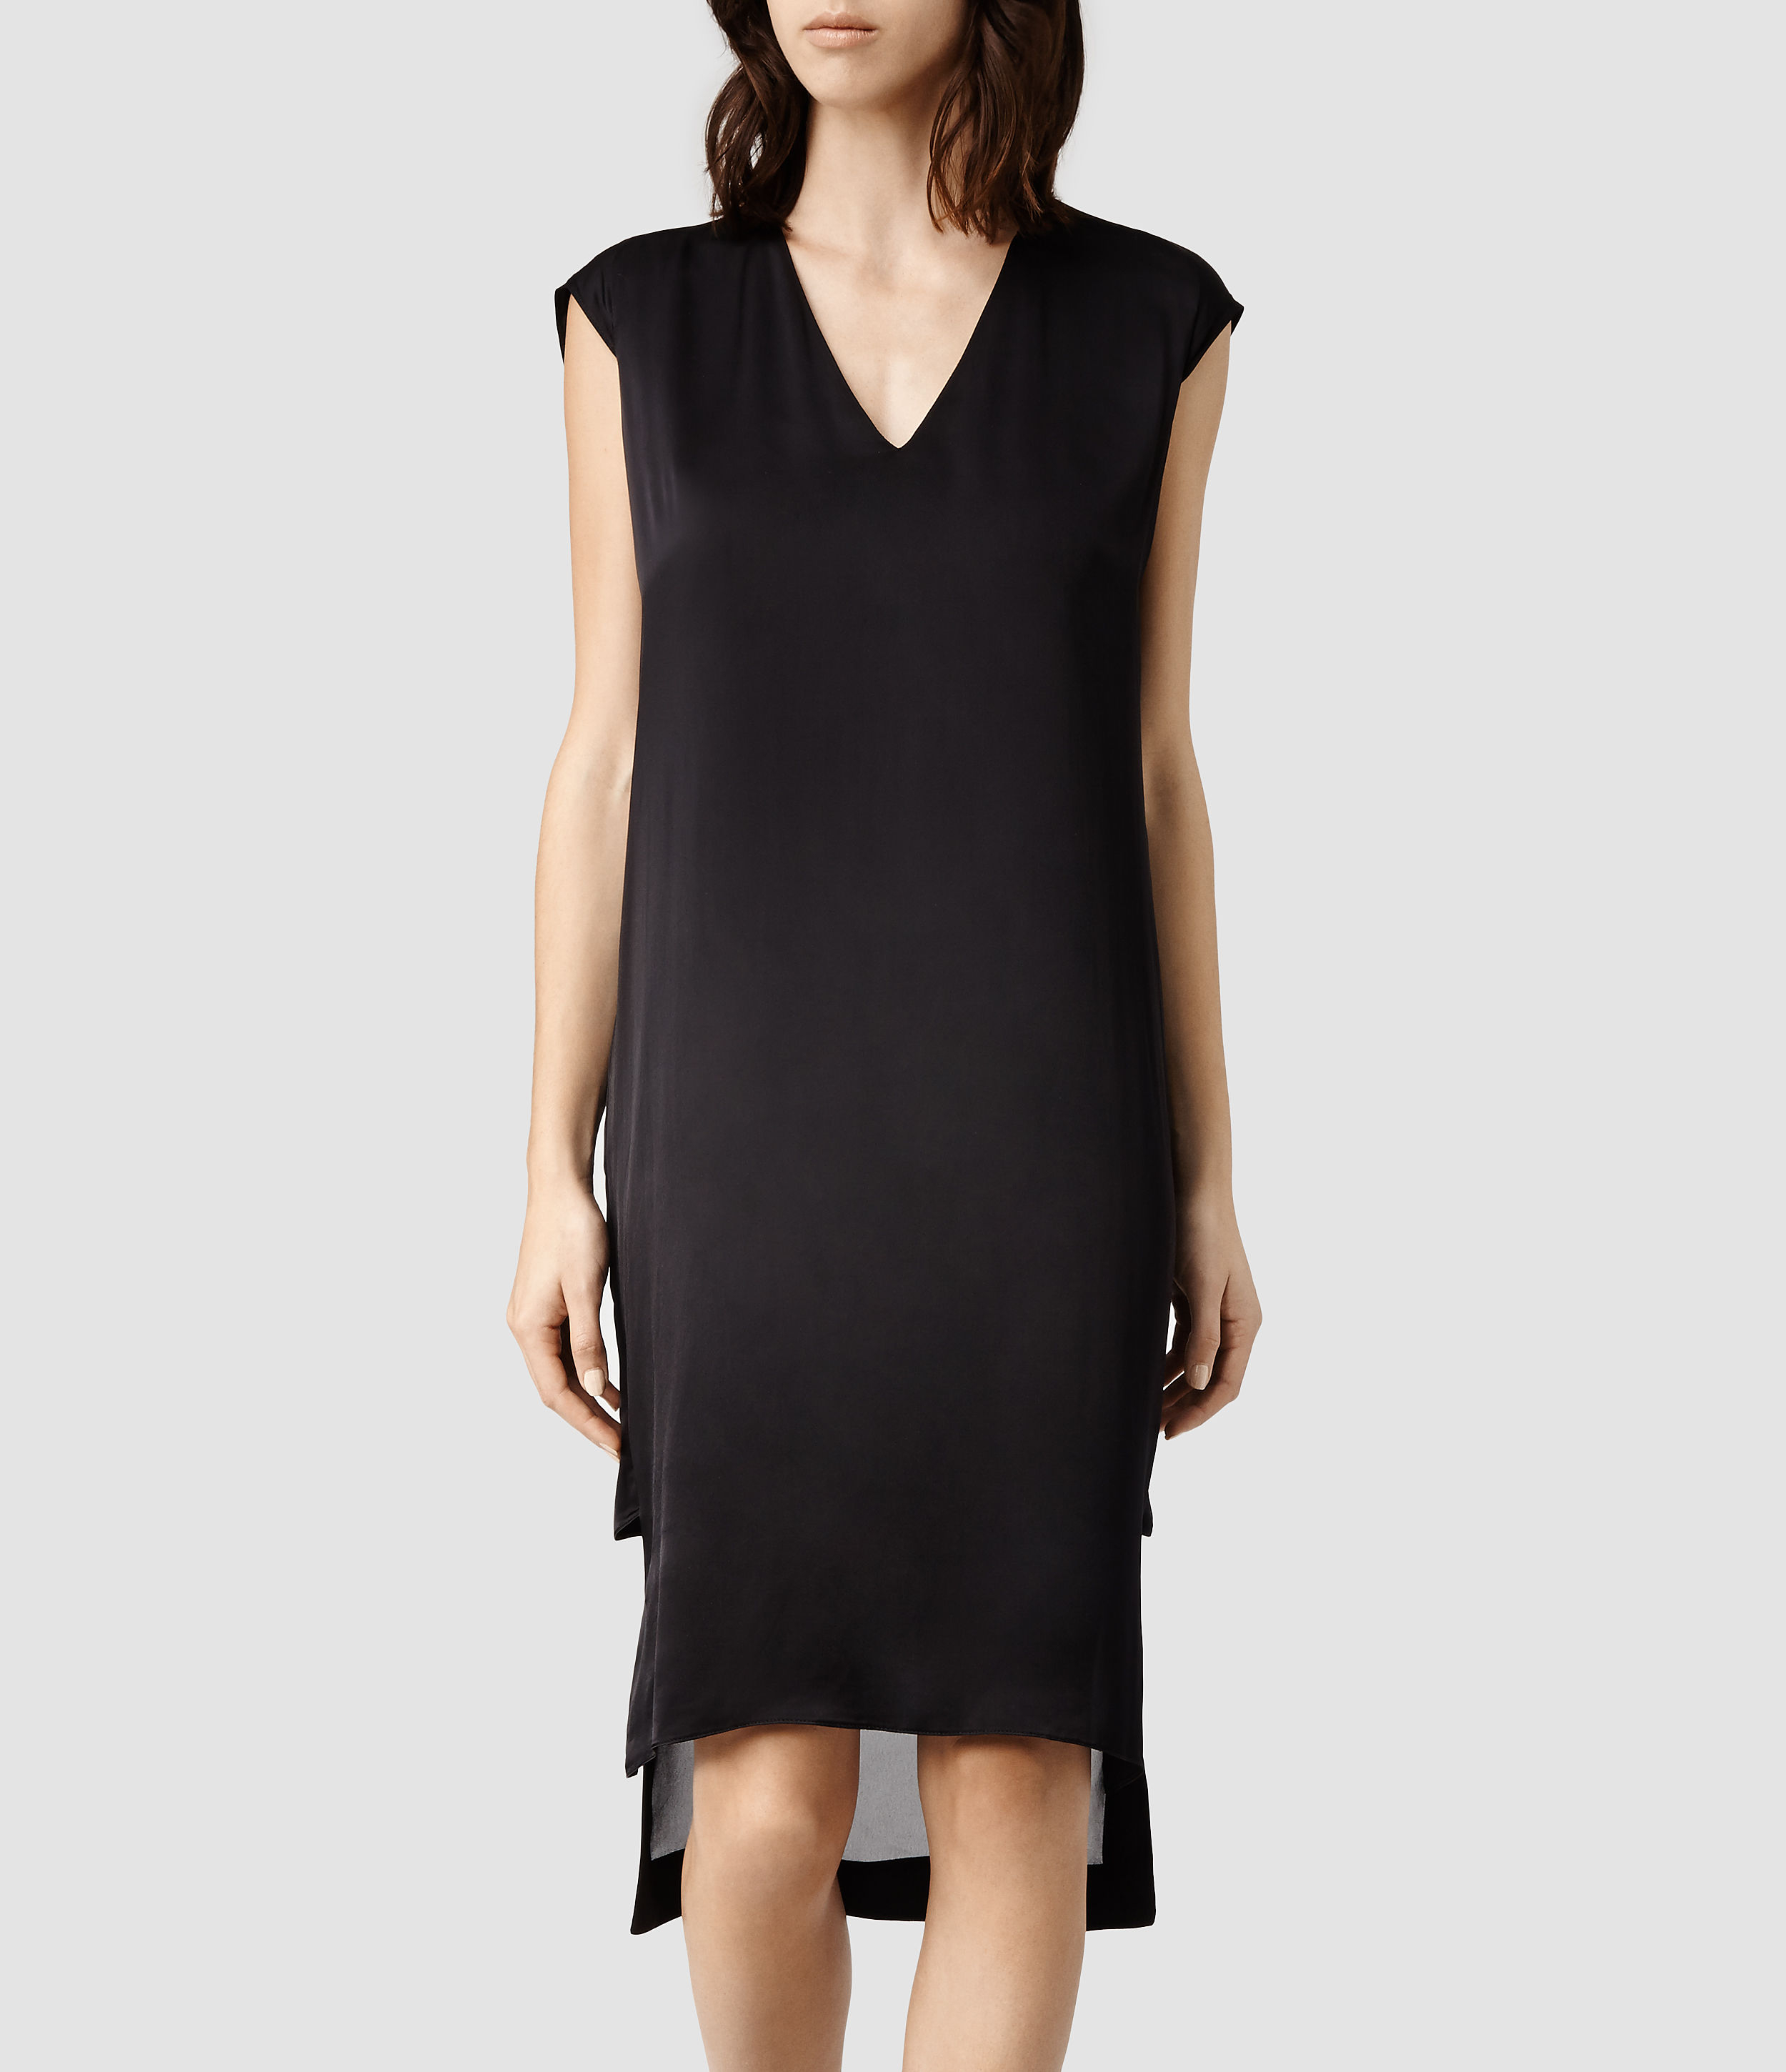 06ece9115 AllSaints Alia Dress in Black - Lyst